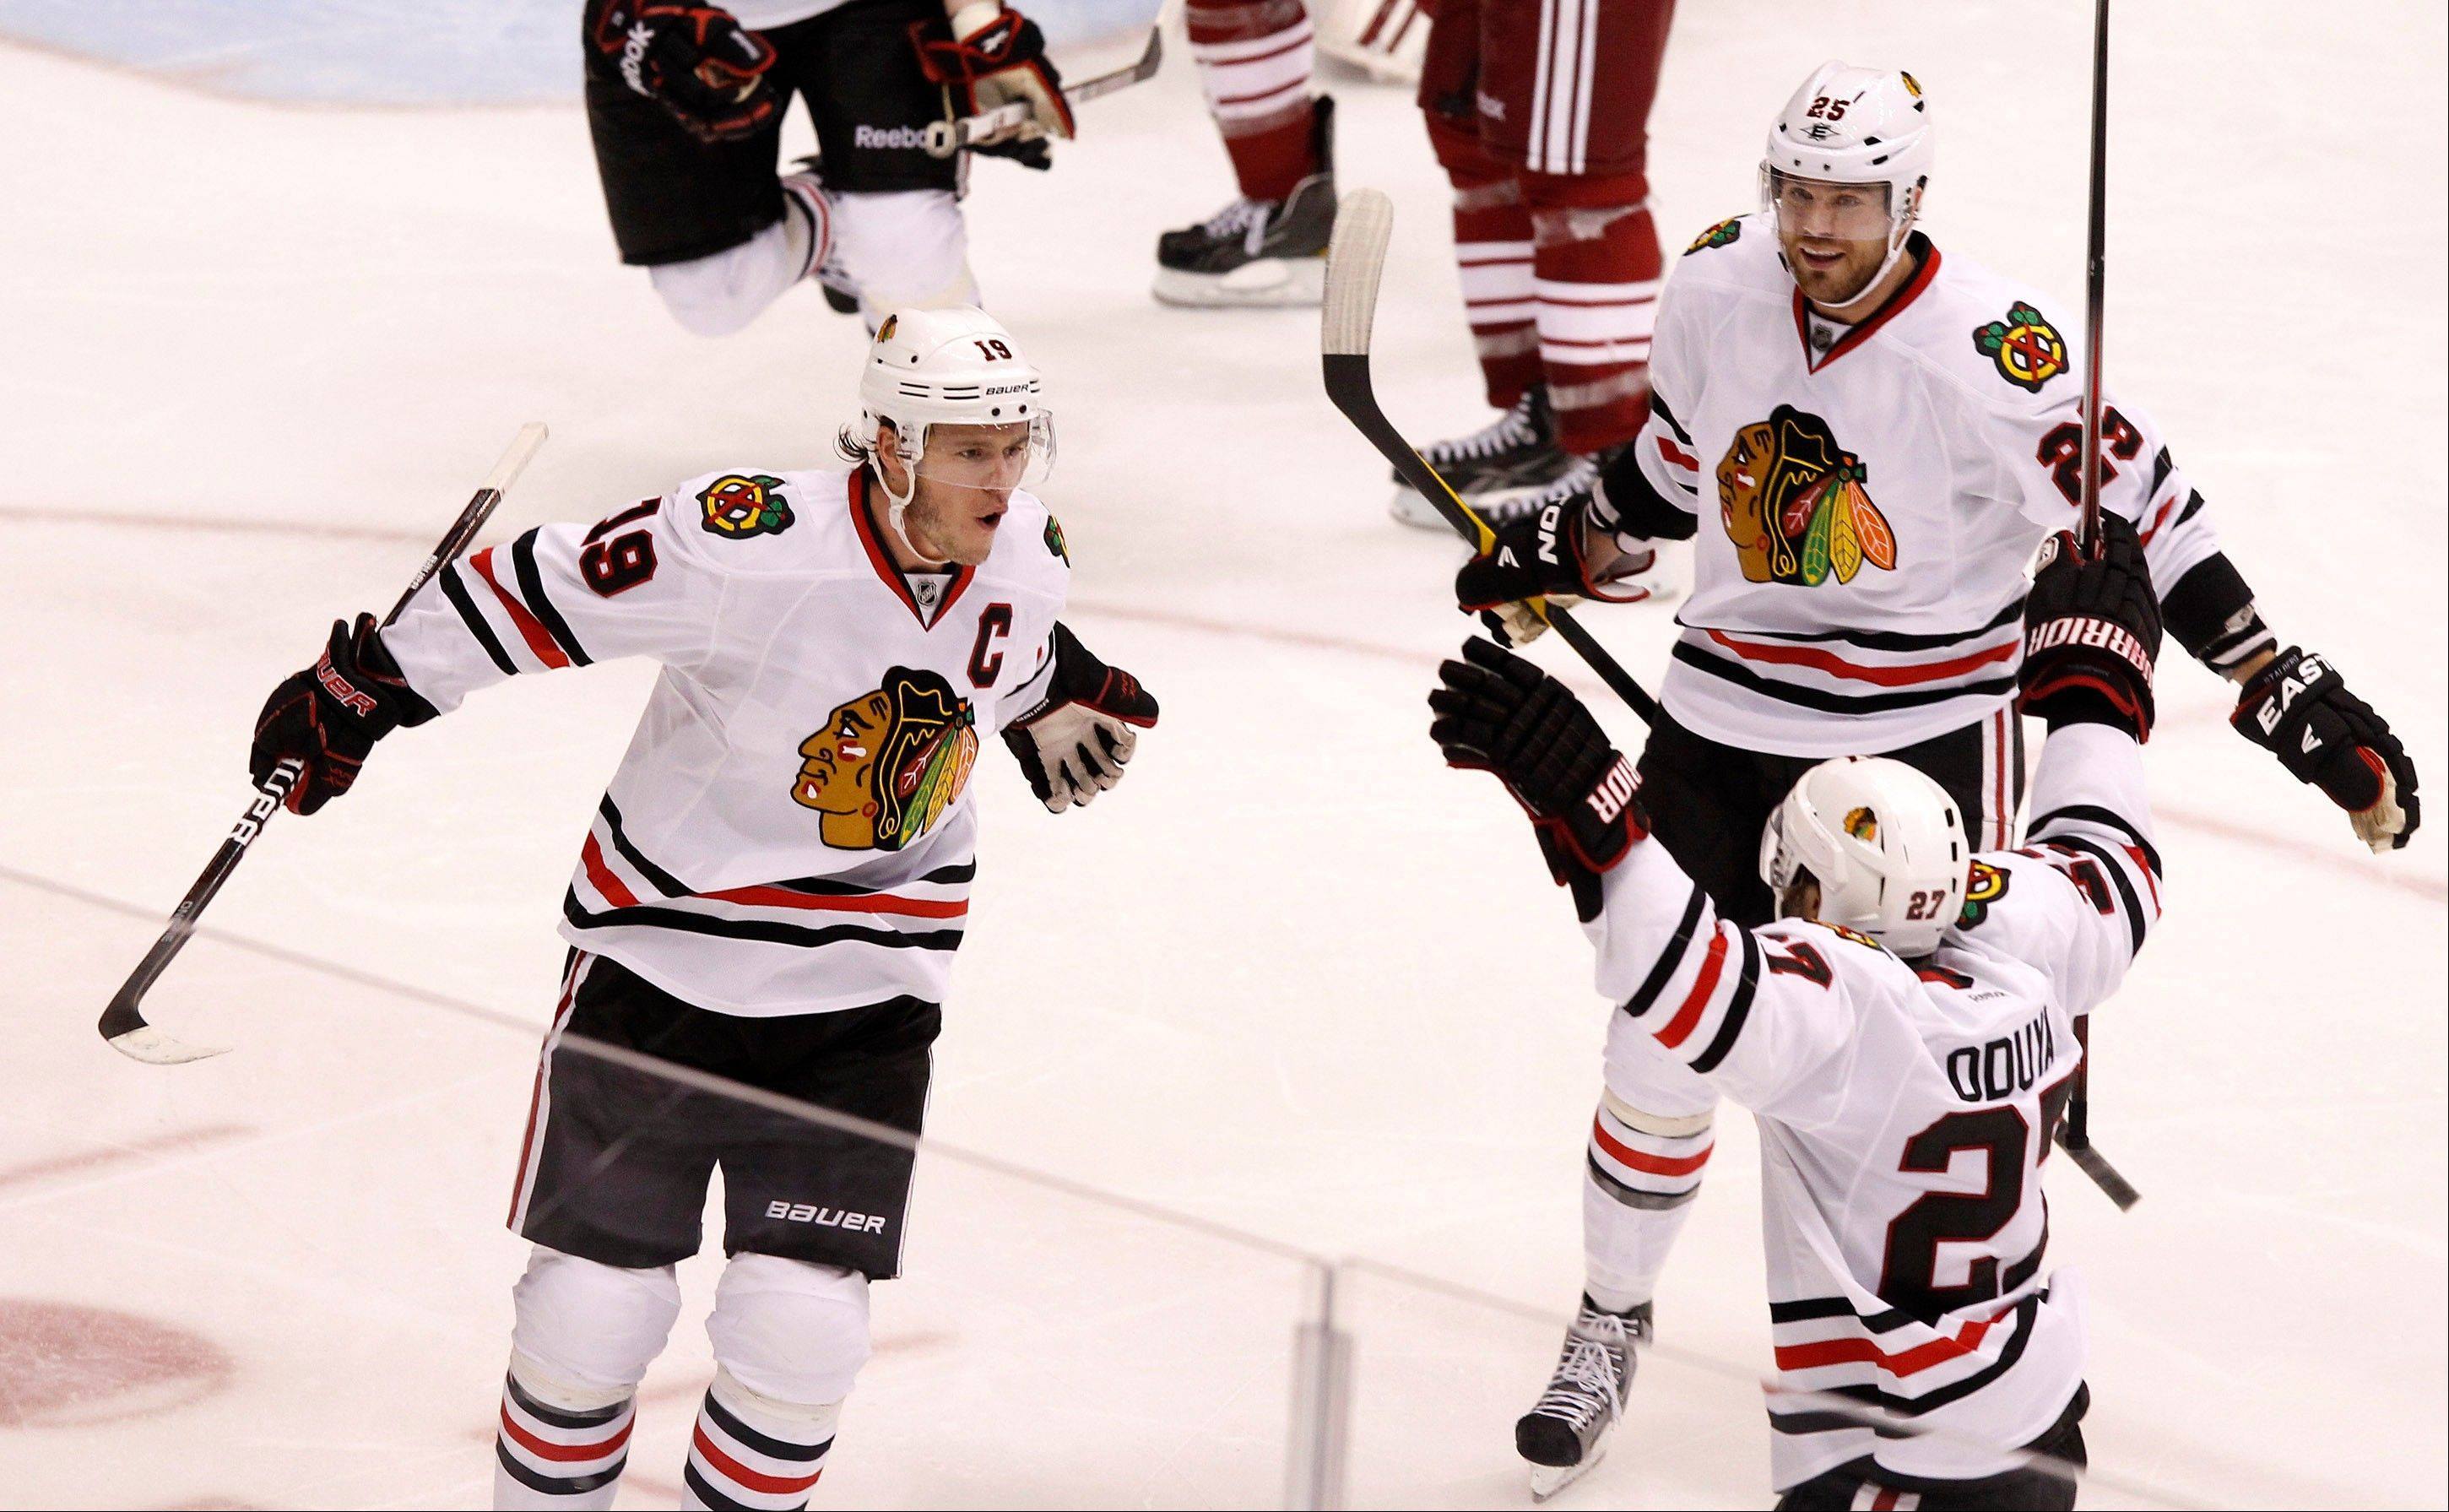 Toews' winner one for the books